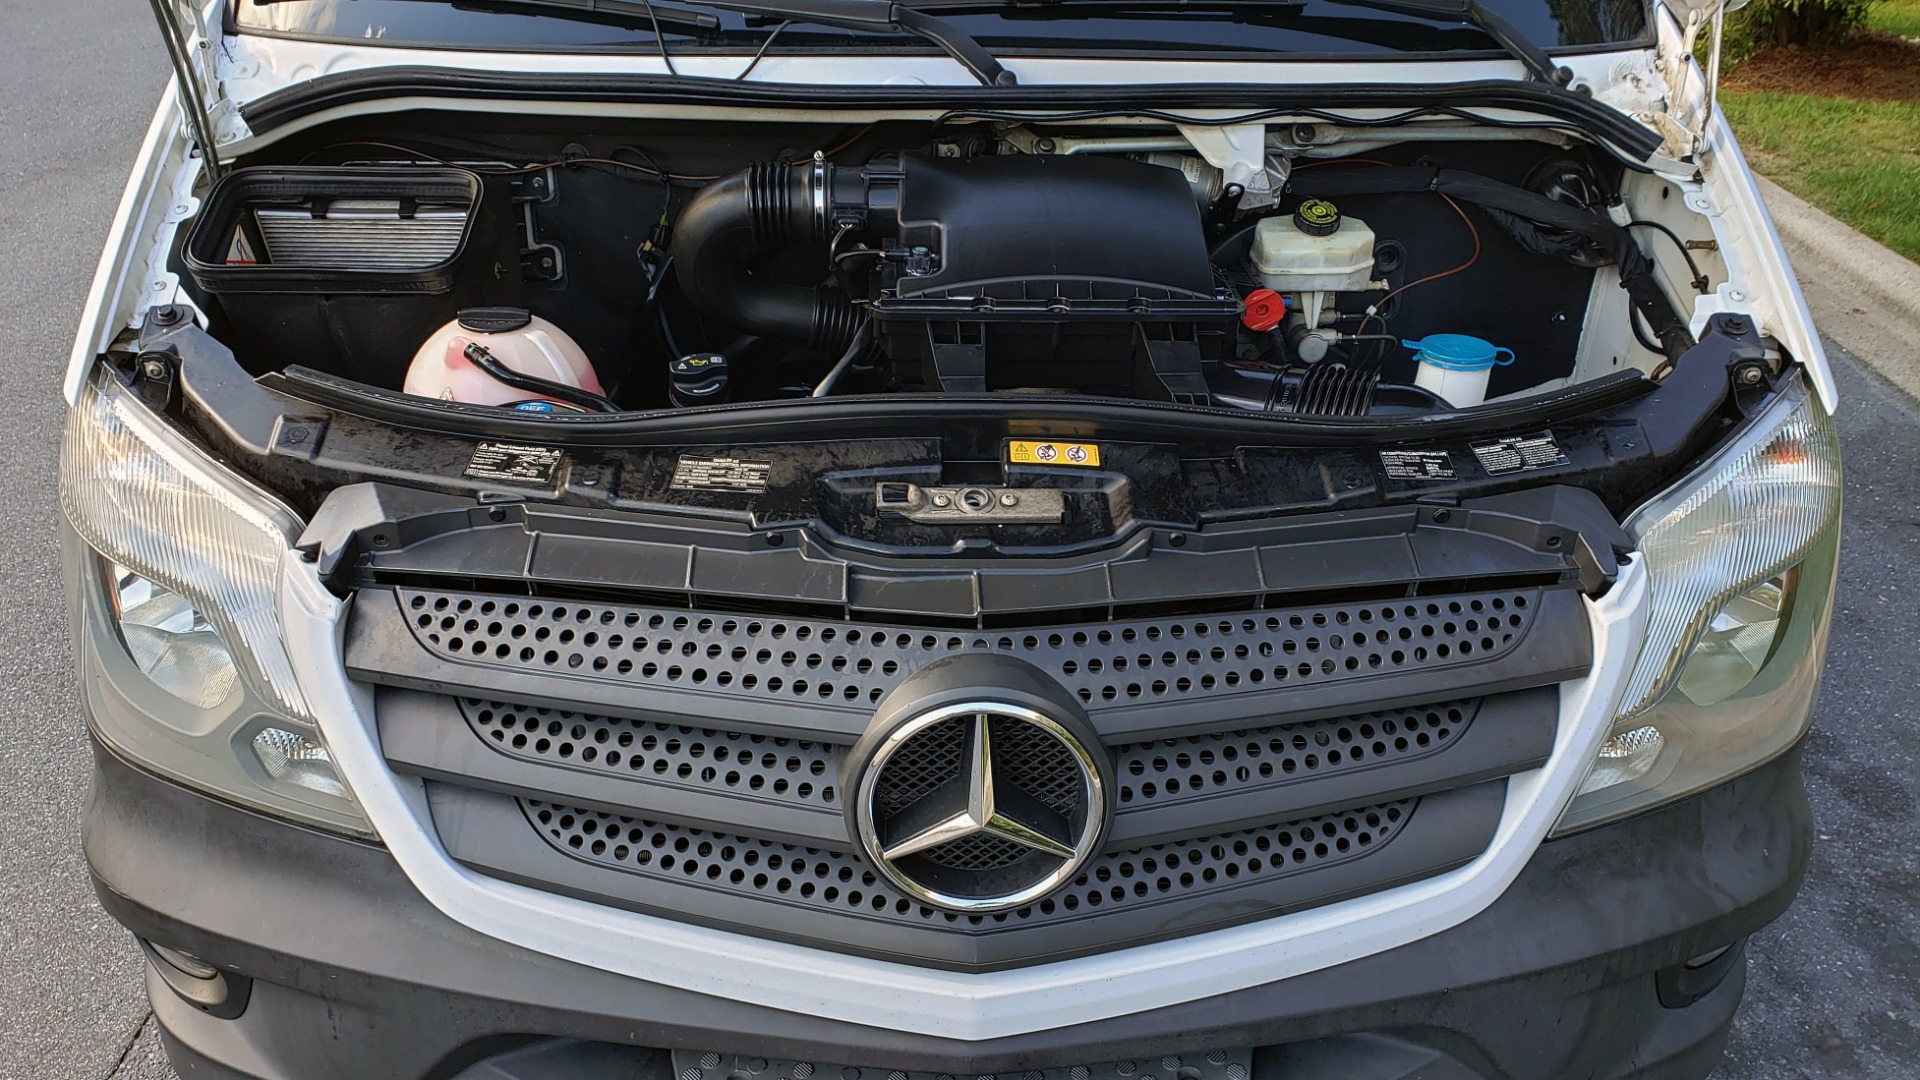 Used 2015 Mercedes-Benz SPRINTER CARGO VAN 4x4 3500 170 EXT / 3.0L V6 TURBO DIESEL / 5-SPD AUTO / REARVIEW for sale $51,999 at Formula Imports in Charlotte NC 28227 8